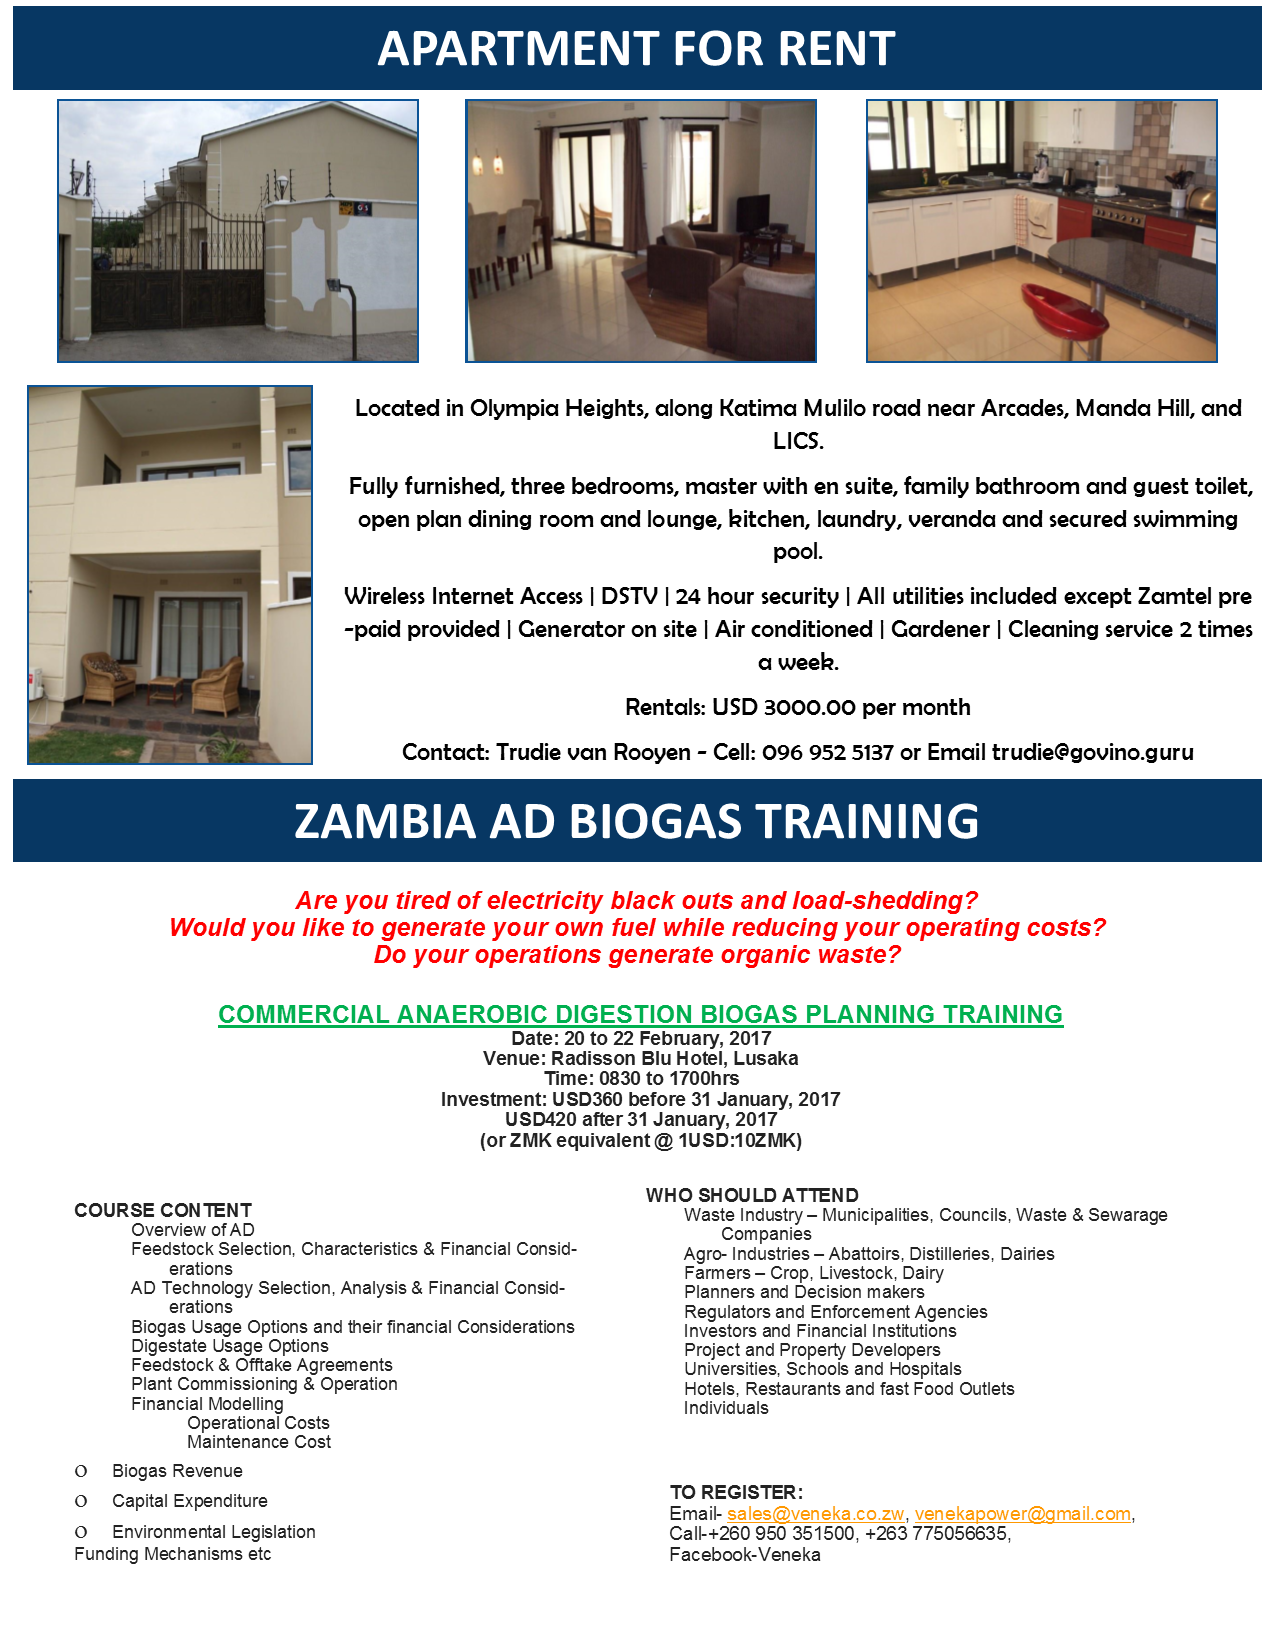 20 01 2017 - APARTMENT FOR RENT / ZAMBIA AD BIOGAS TRAINING